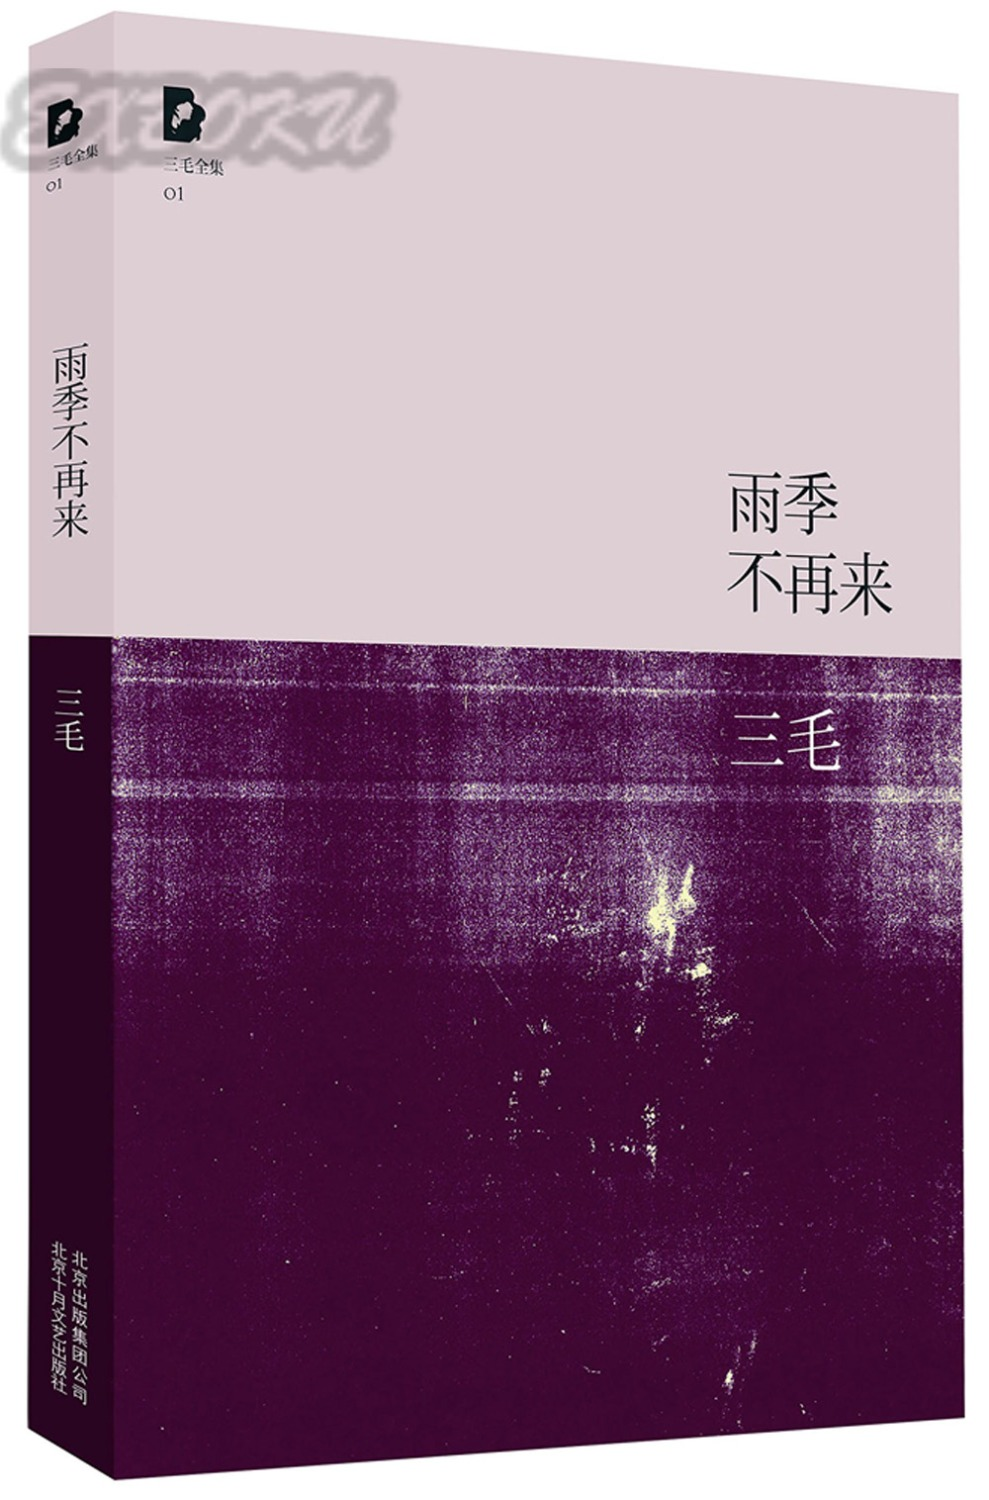 The rainy season is no longer to her written by san mao / chinese famous story fiction book 7pcs set world famous story book chinese and english novel fiction book